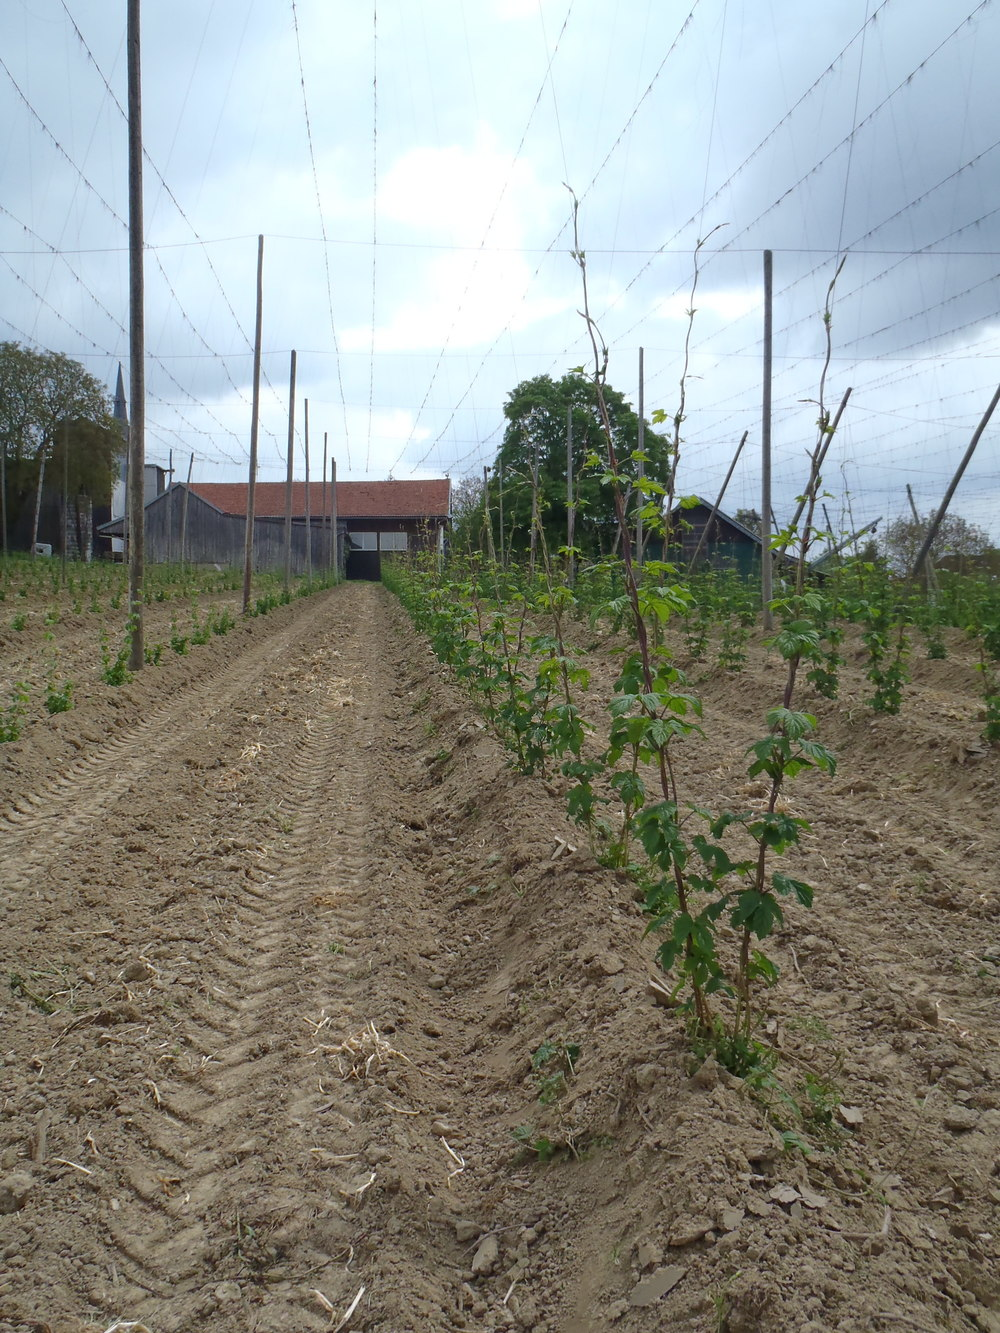 Freshly hilled-up hop field in early spring.